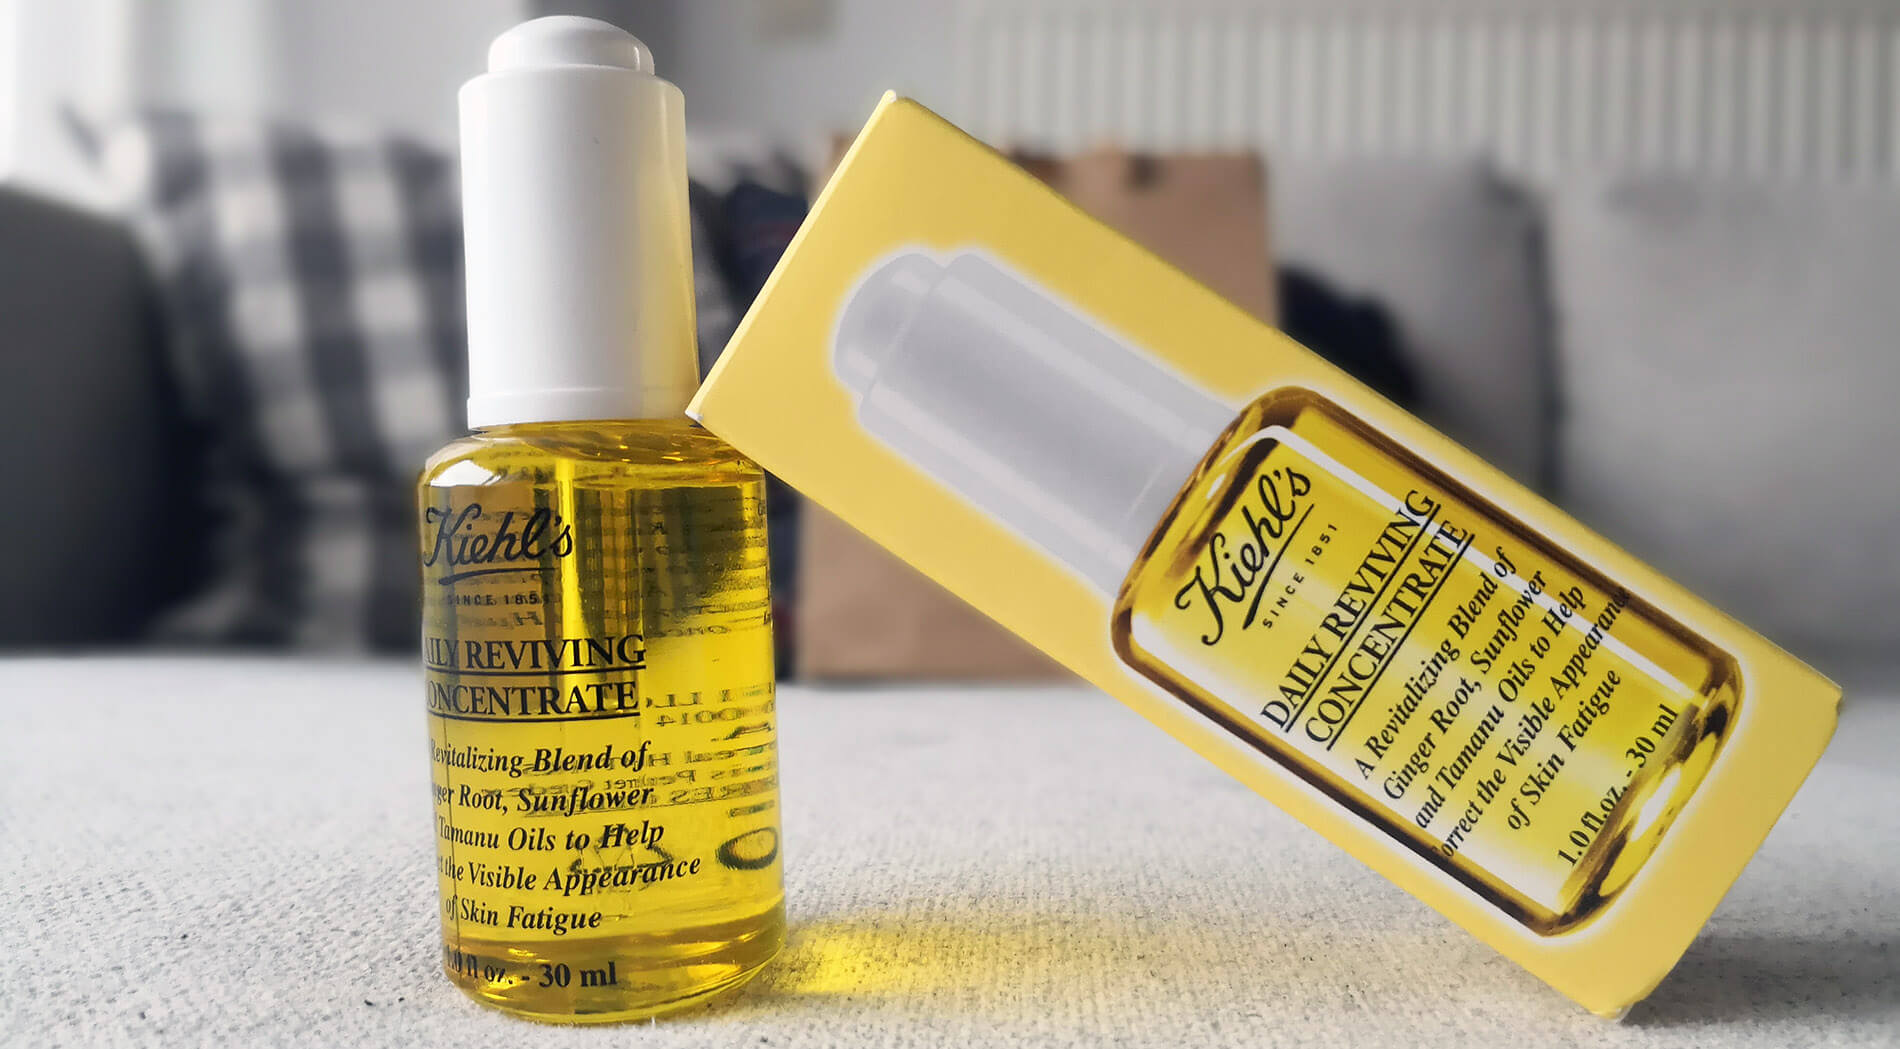 Kiehls daily reviving concentrate review español